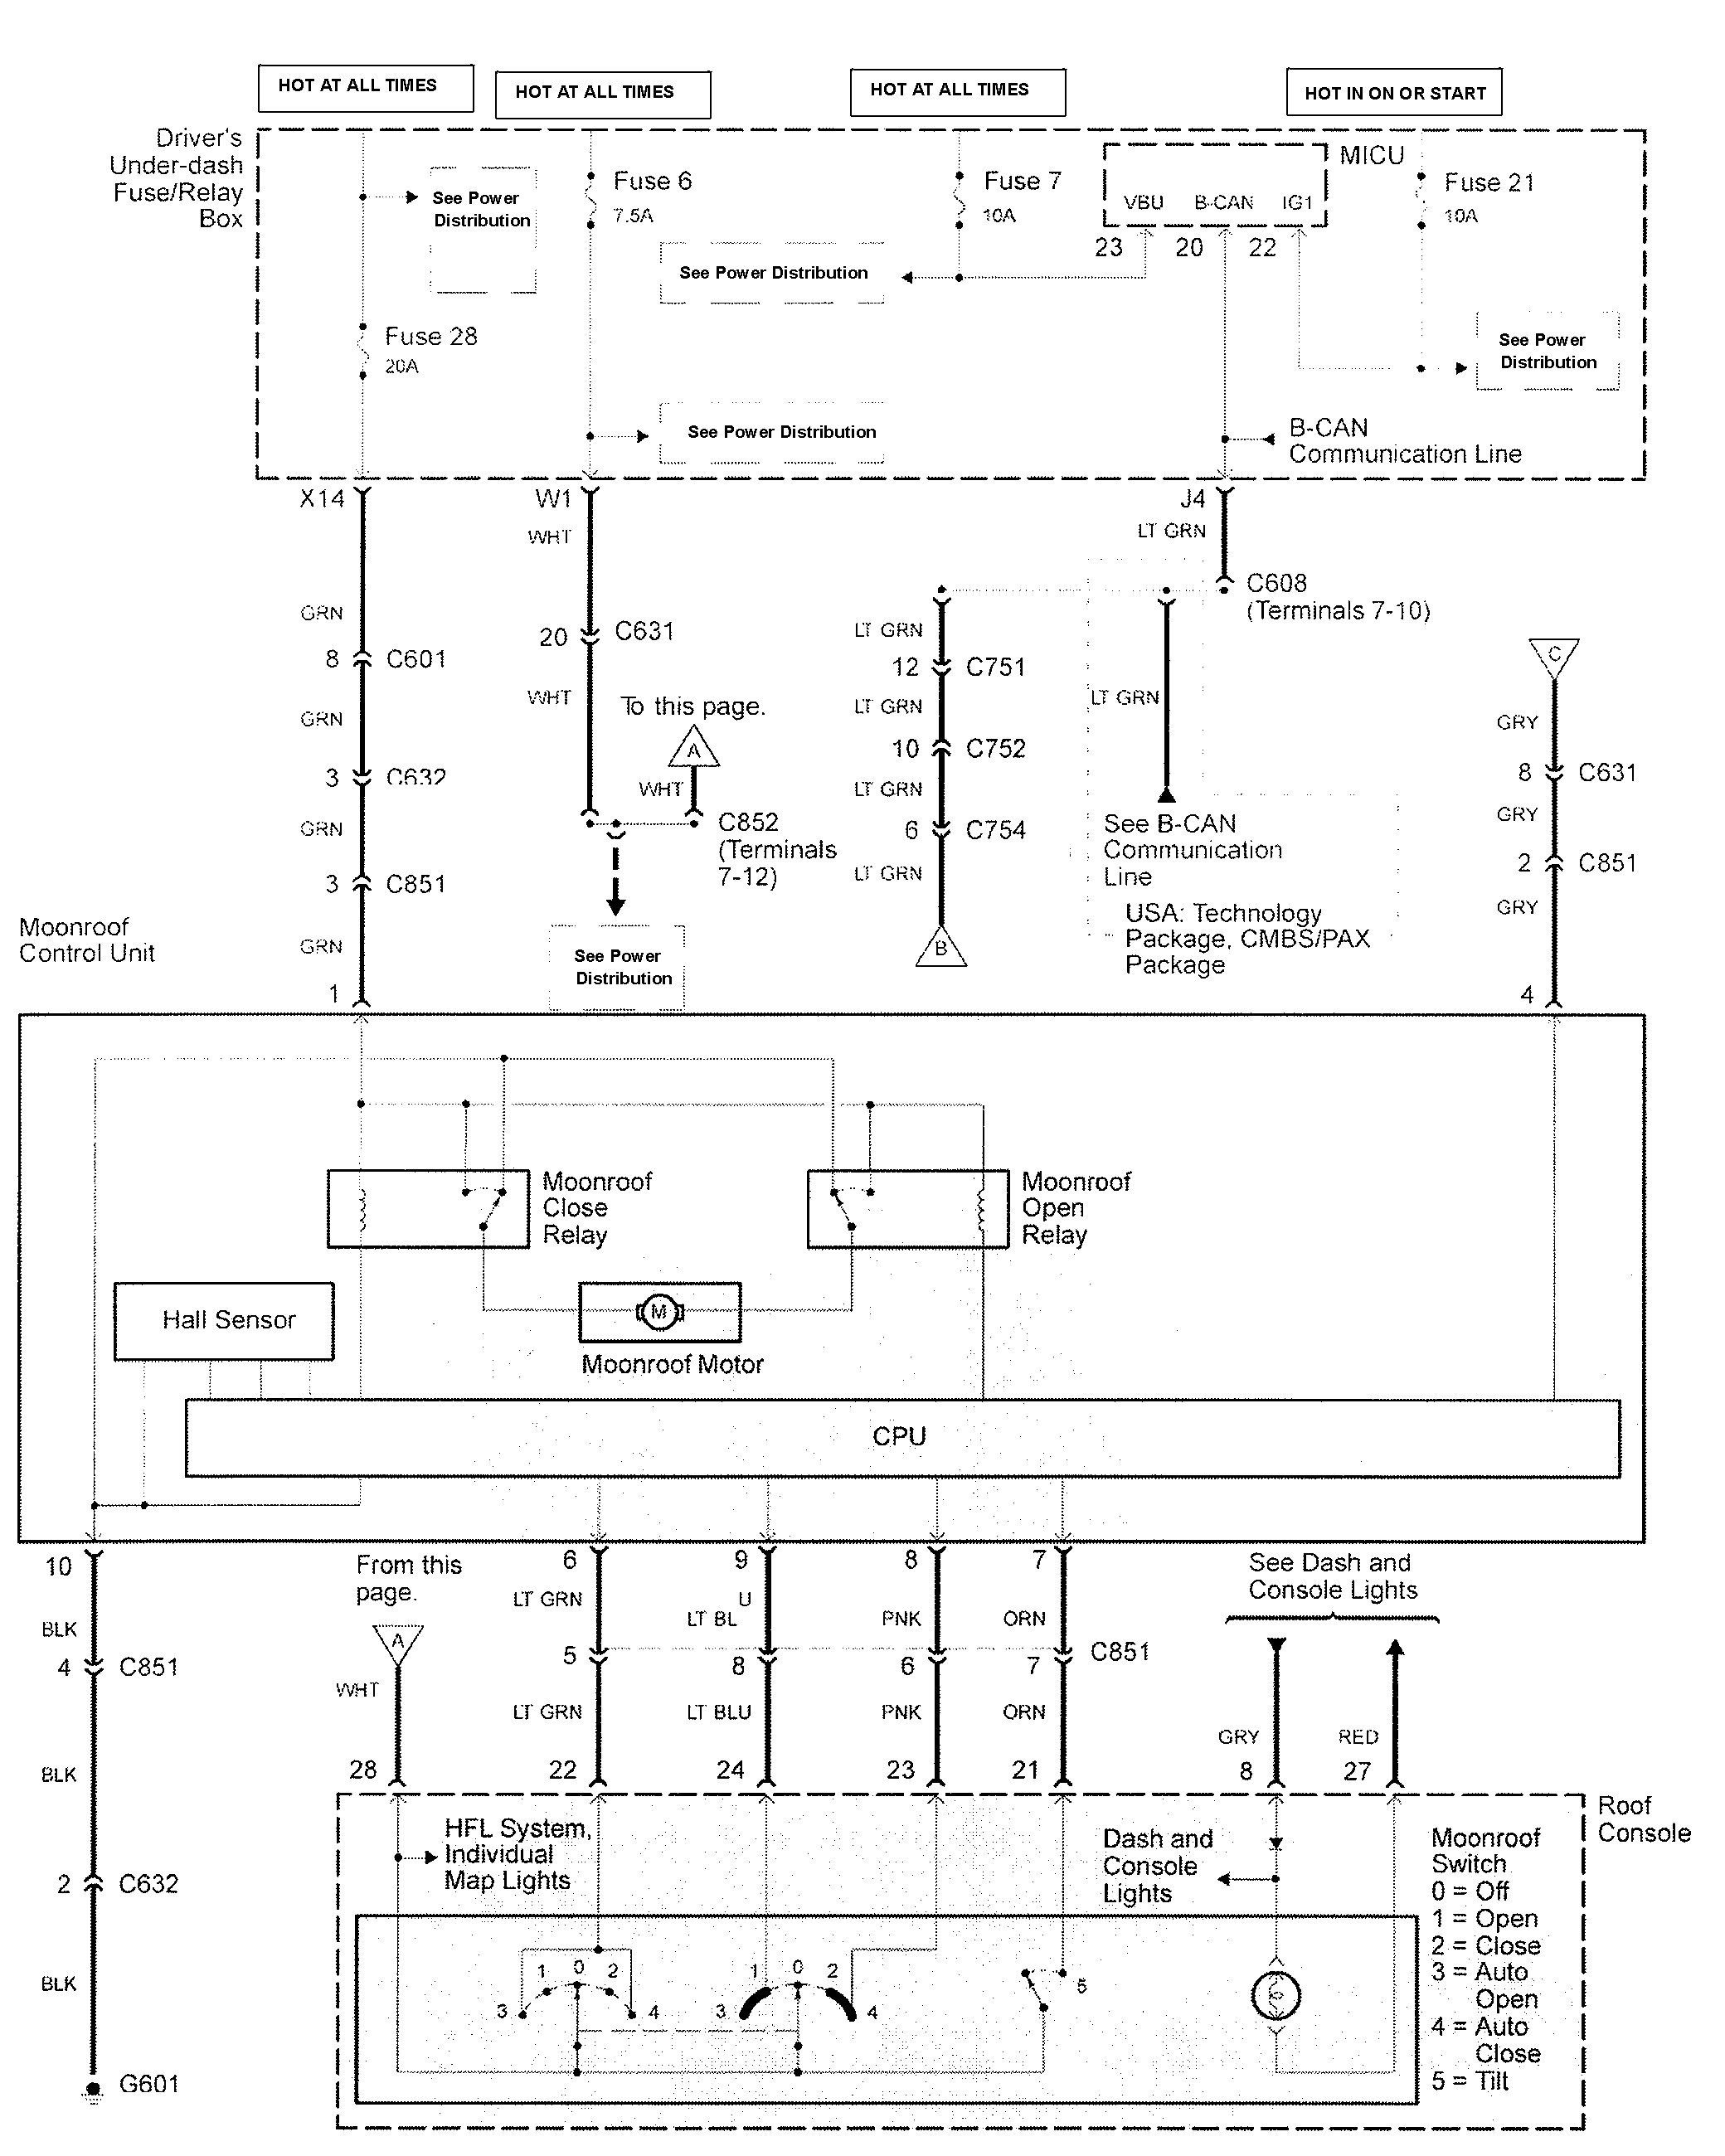 2010 Hyundai Veracruz Fuse Box Diagram Wiring Diagrams 2002 Sonata 2008 Auto 2004 Elantra Map